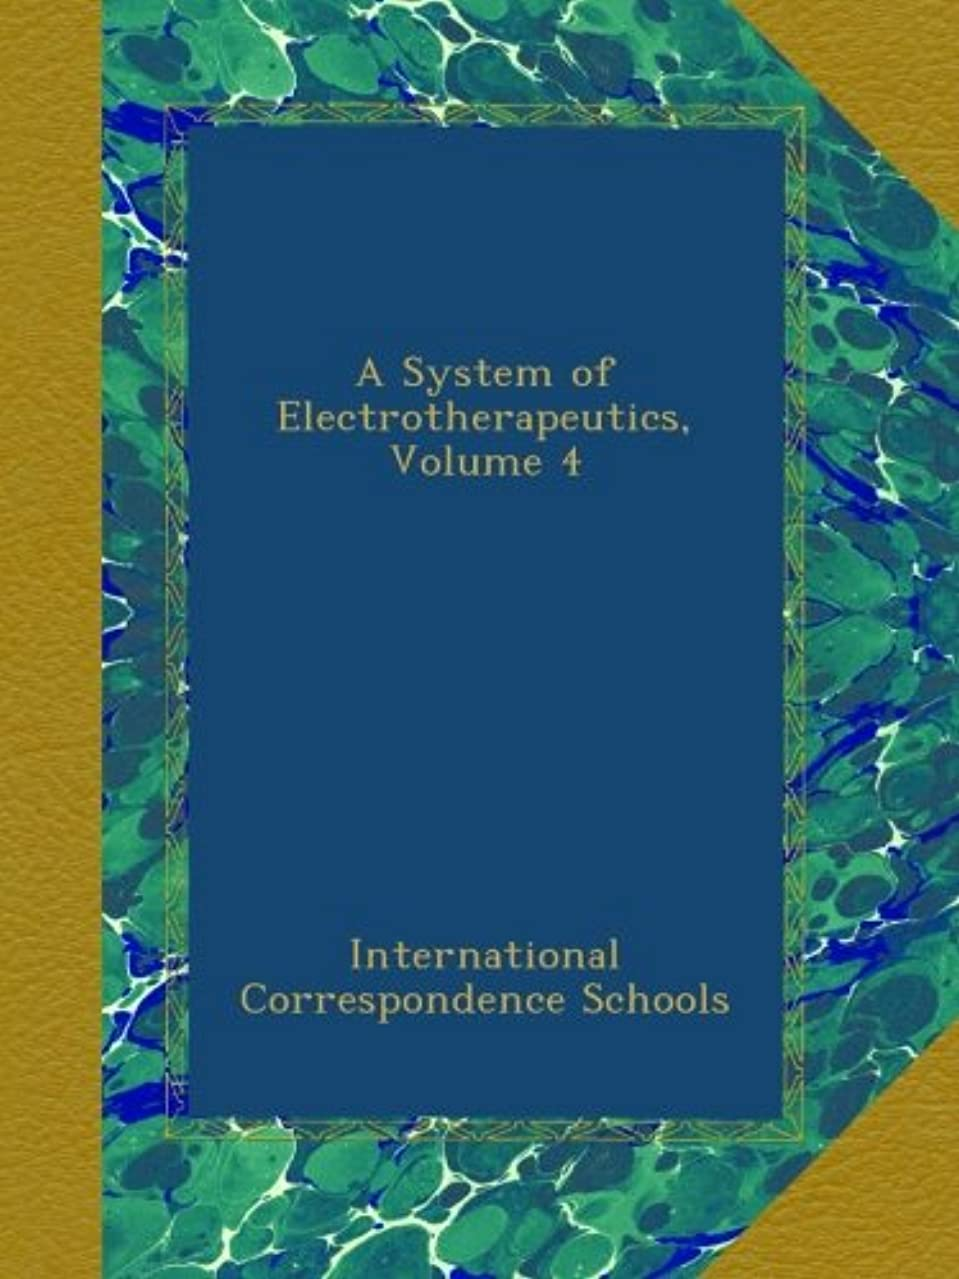 ポーチマッシュとしてA System of Electrotherapeutics, Volume 4